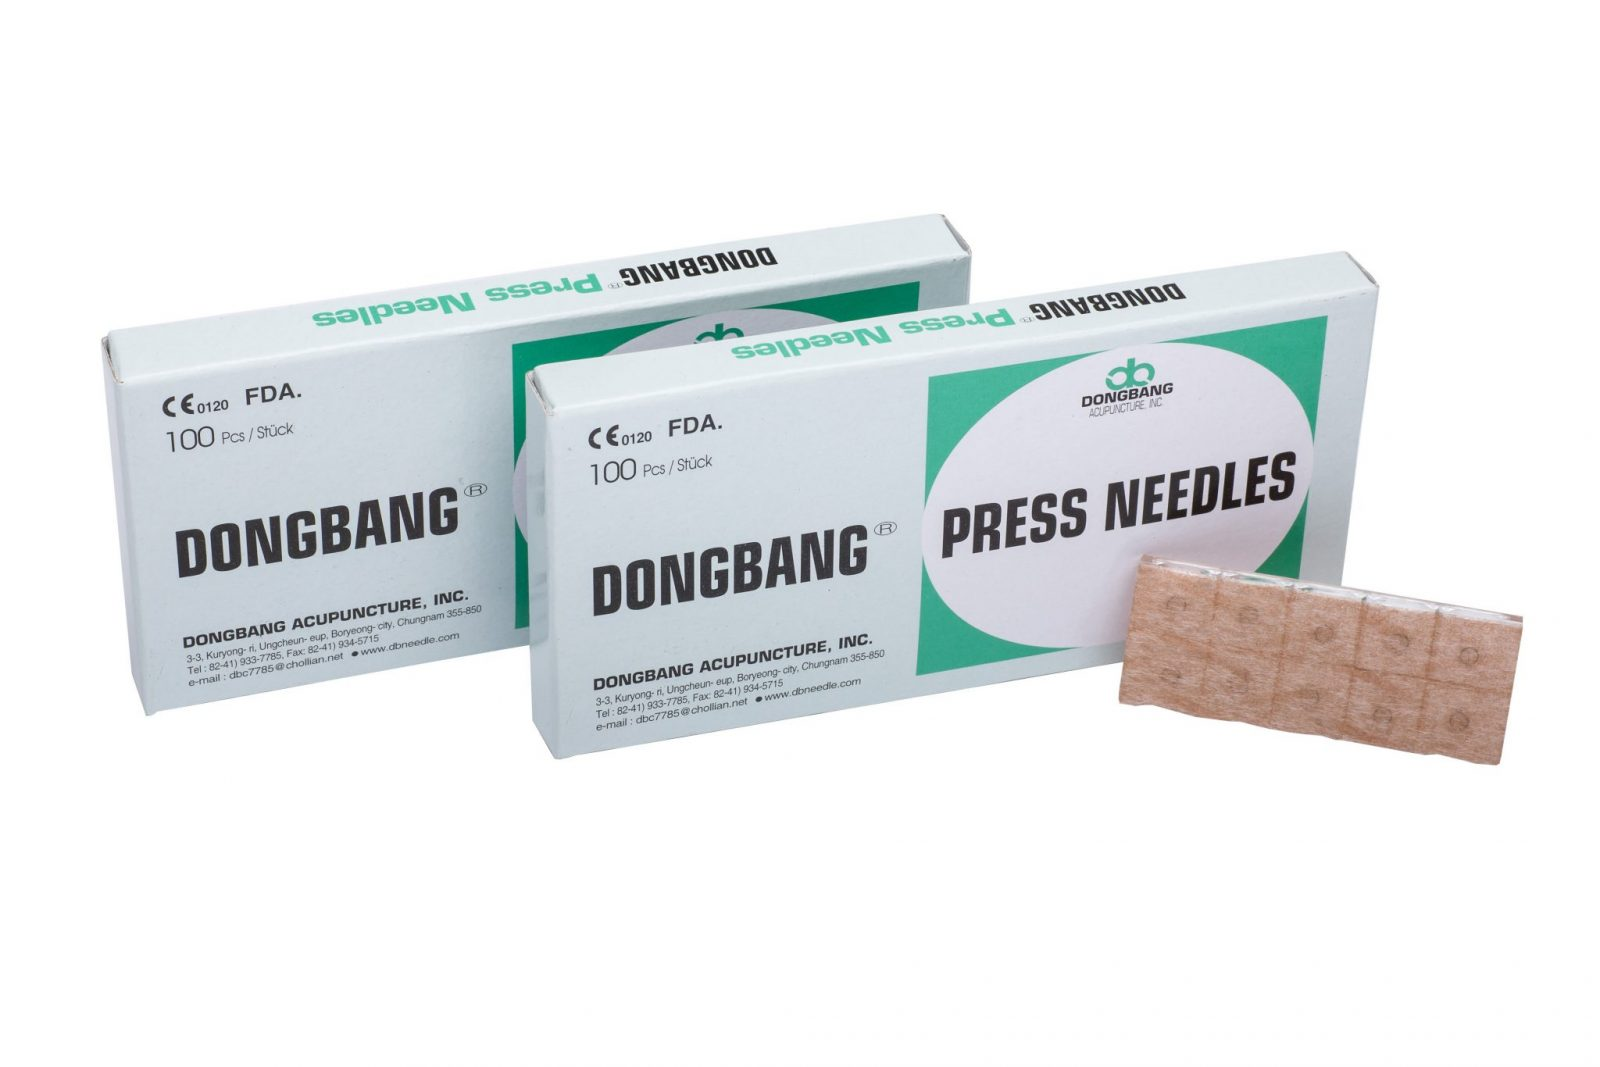 DongBang Press Needles